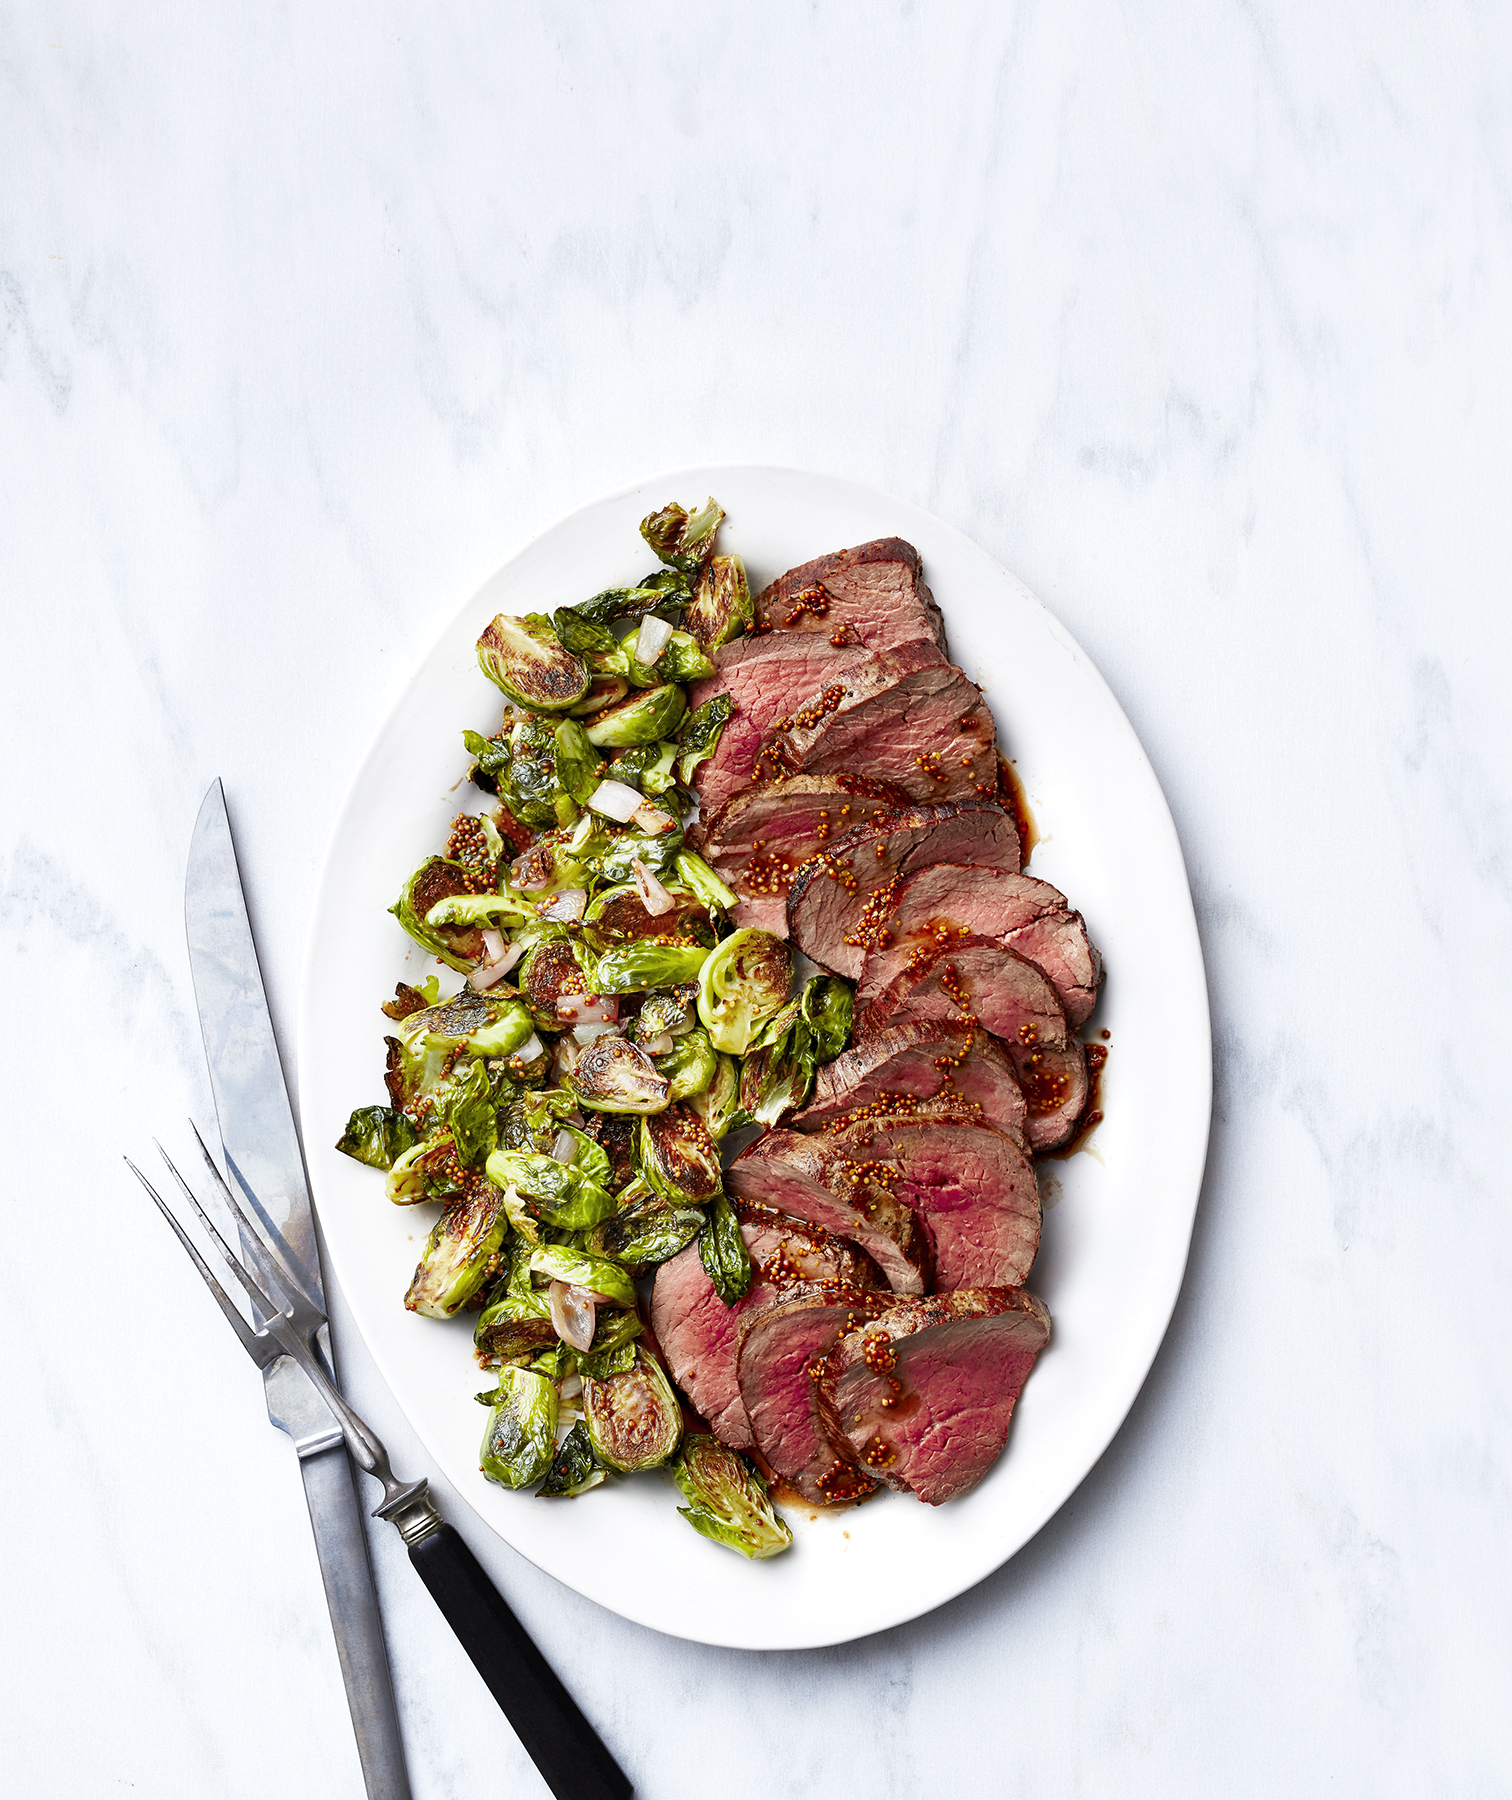 Sheet Pan Beef Tenderloin With Brussels Sprouts And Shallots